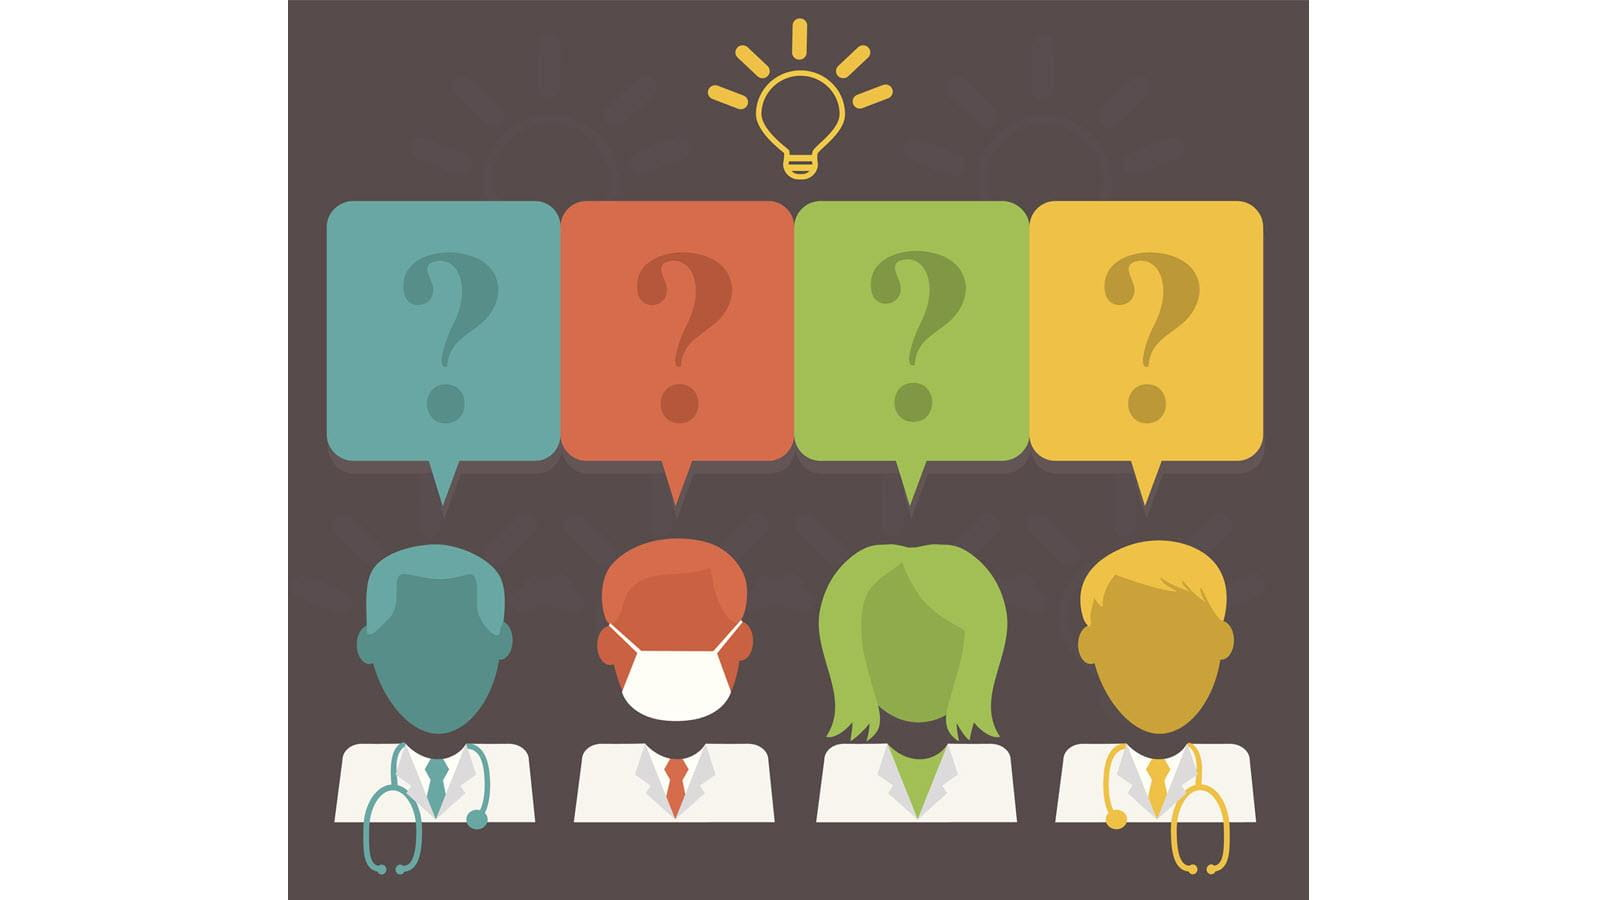 Illustration of four doctors with question marks above their heads